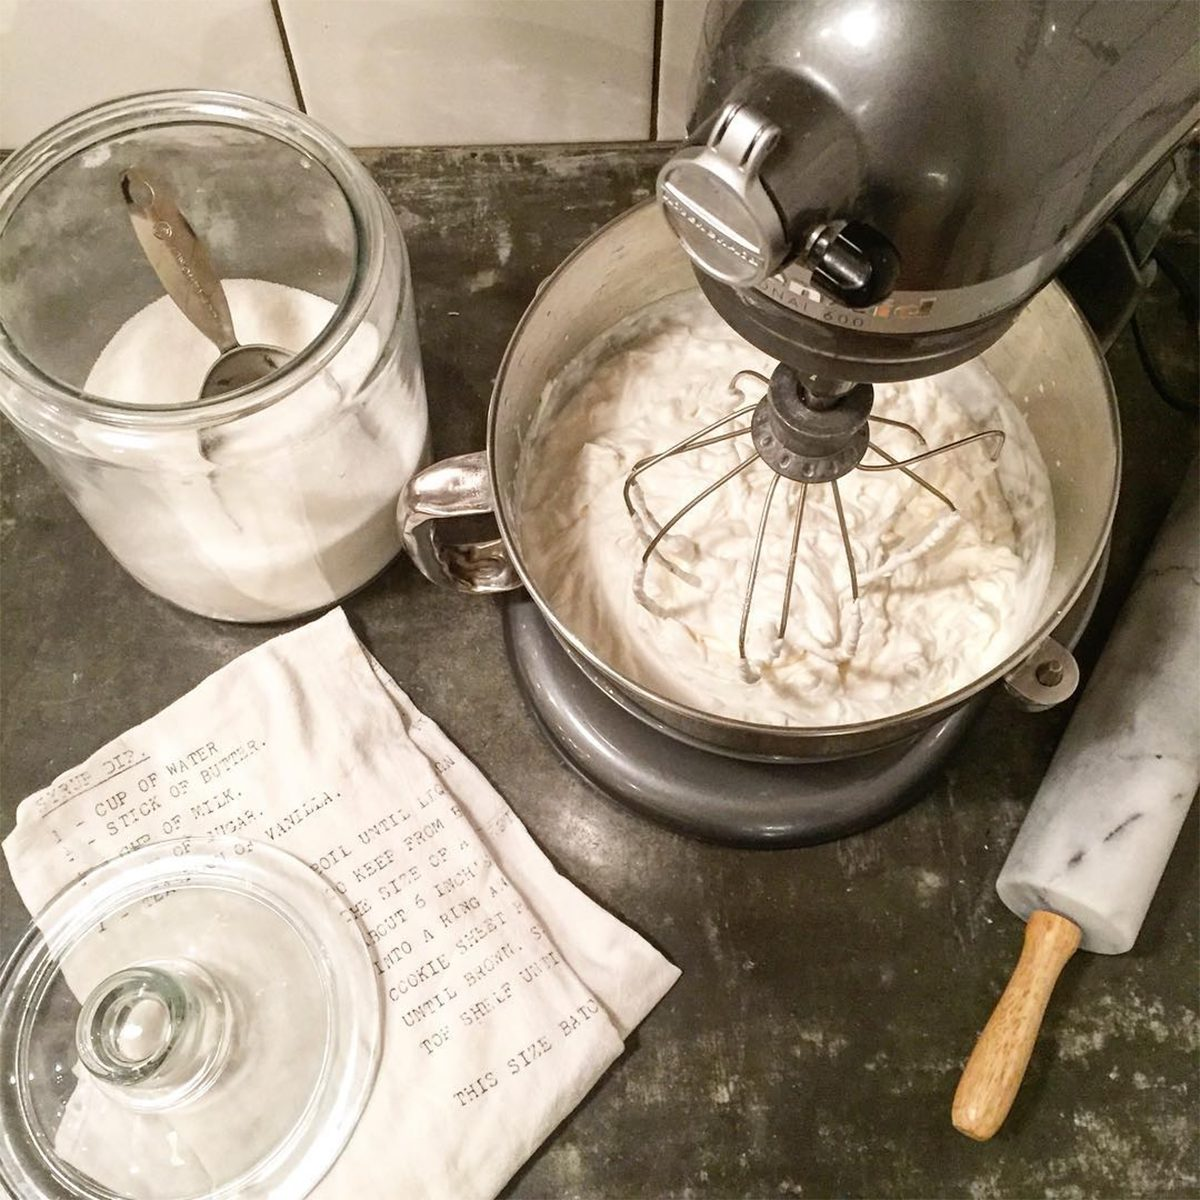 baking with a KitchenAid, sugar and a rolling pin